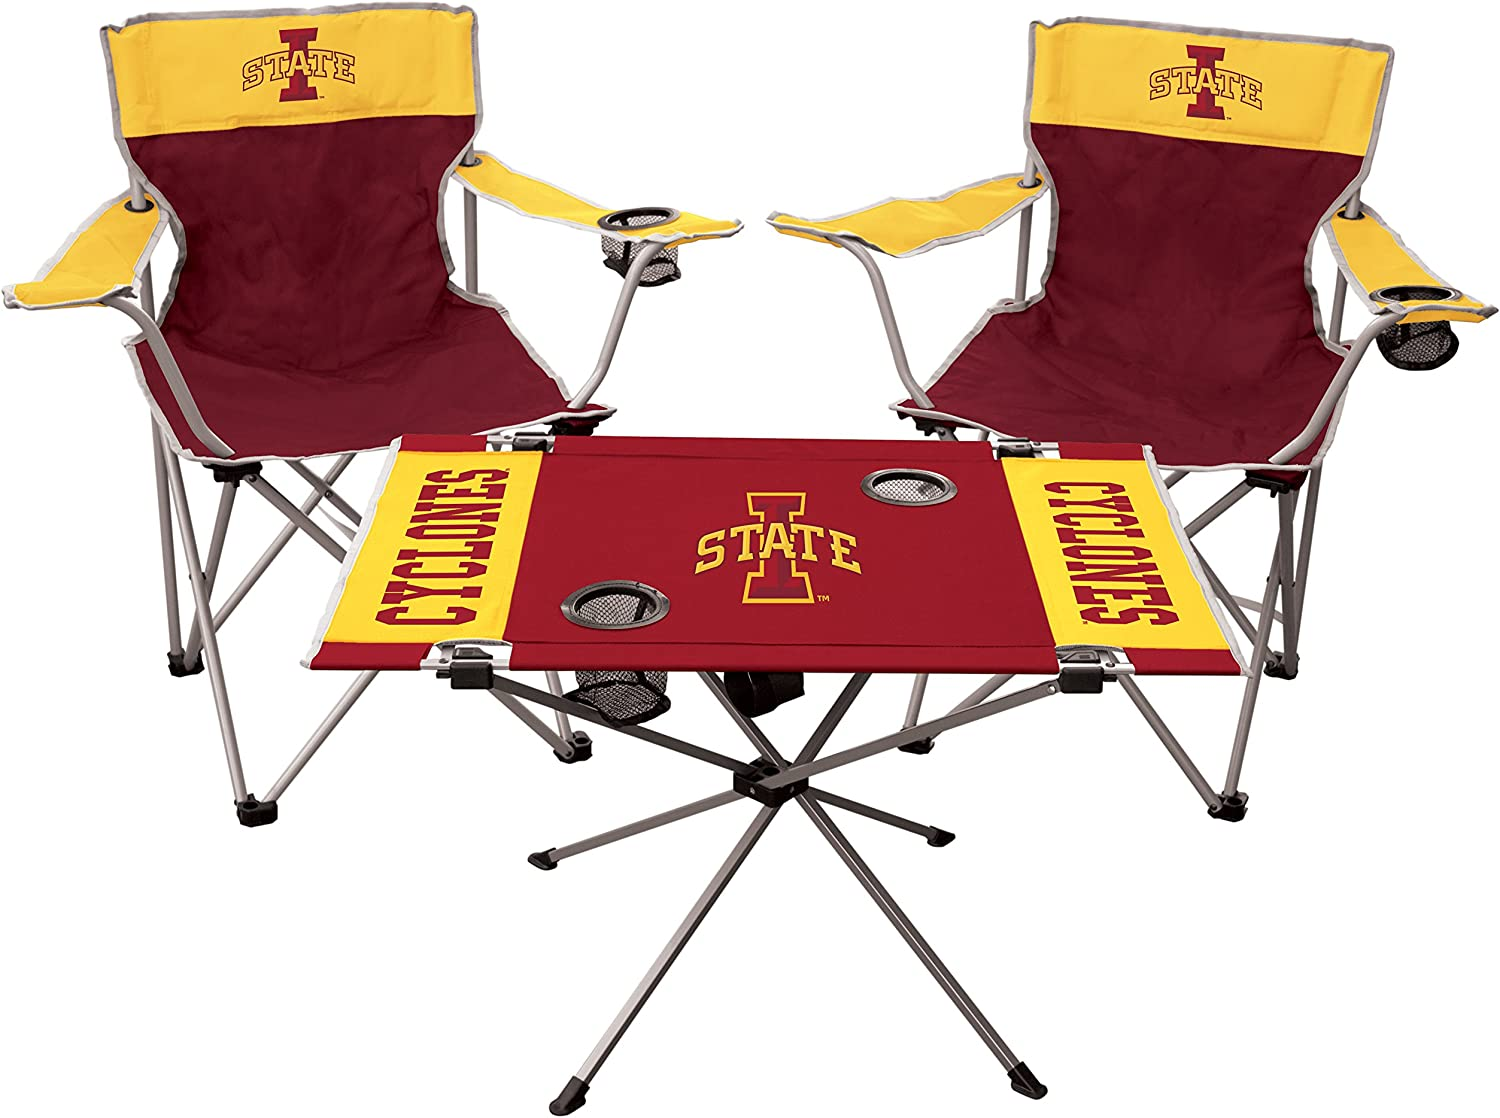 All Team Options Includes 2 Chairs /& 1 Table RAWLINGS NCAA 3-Piece Tailgate Kit